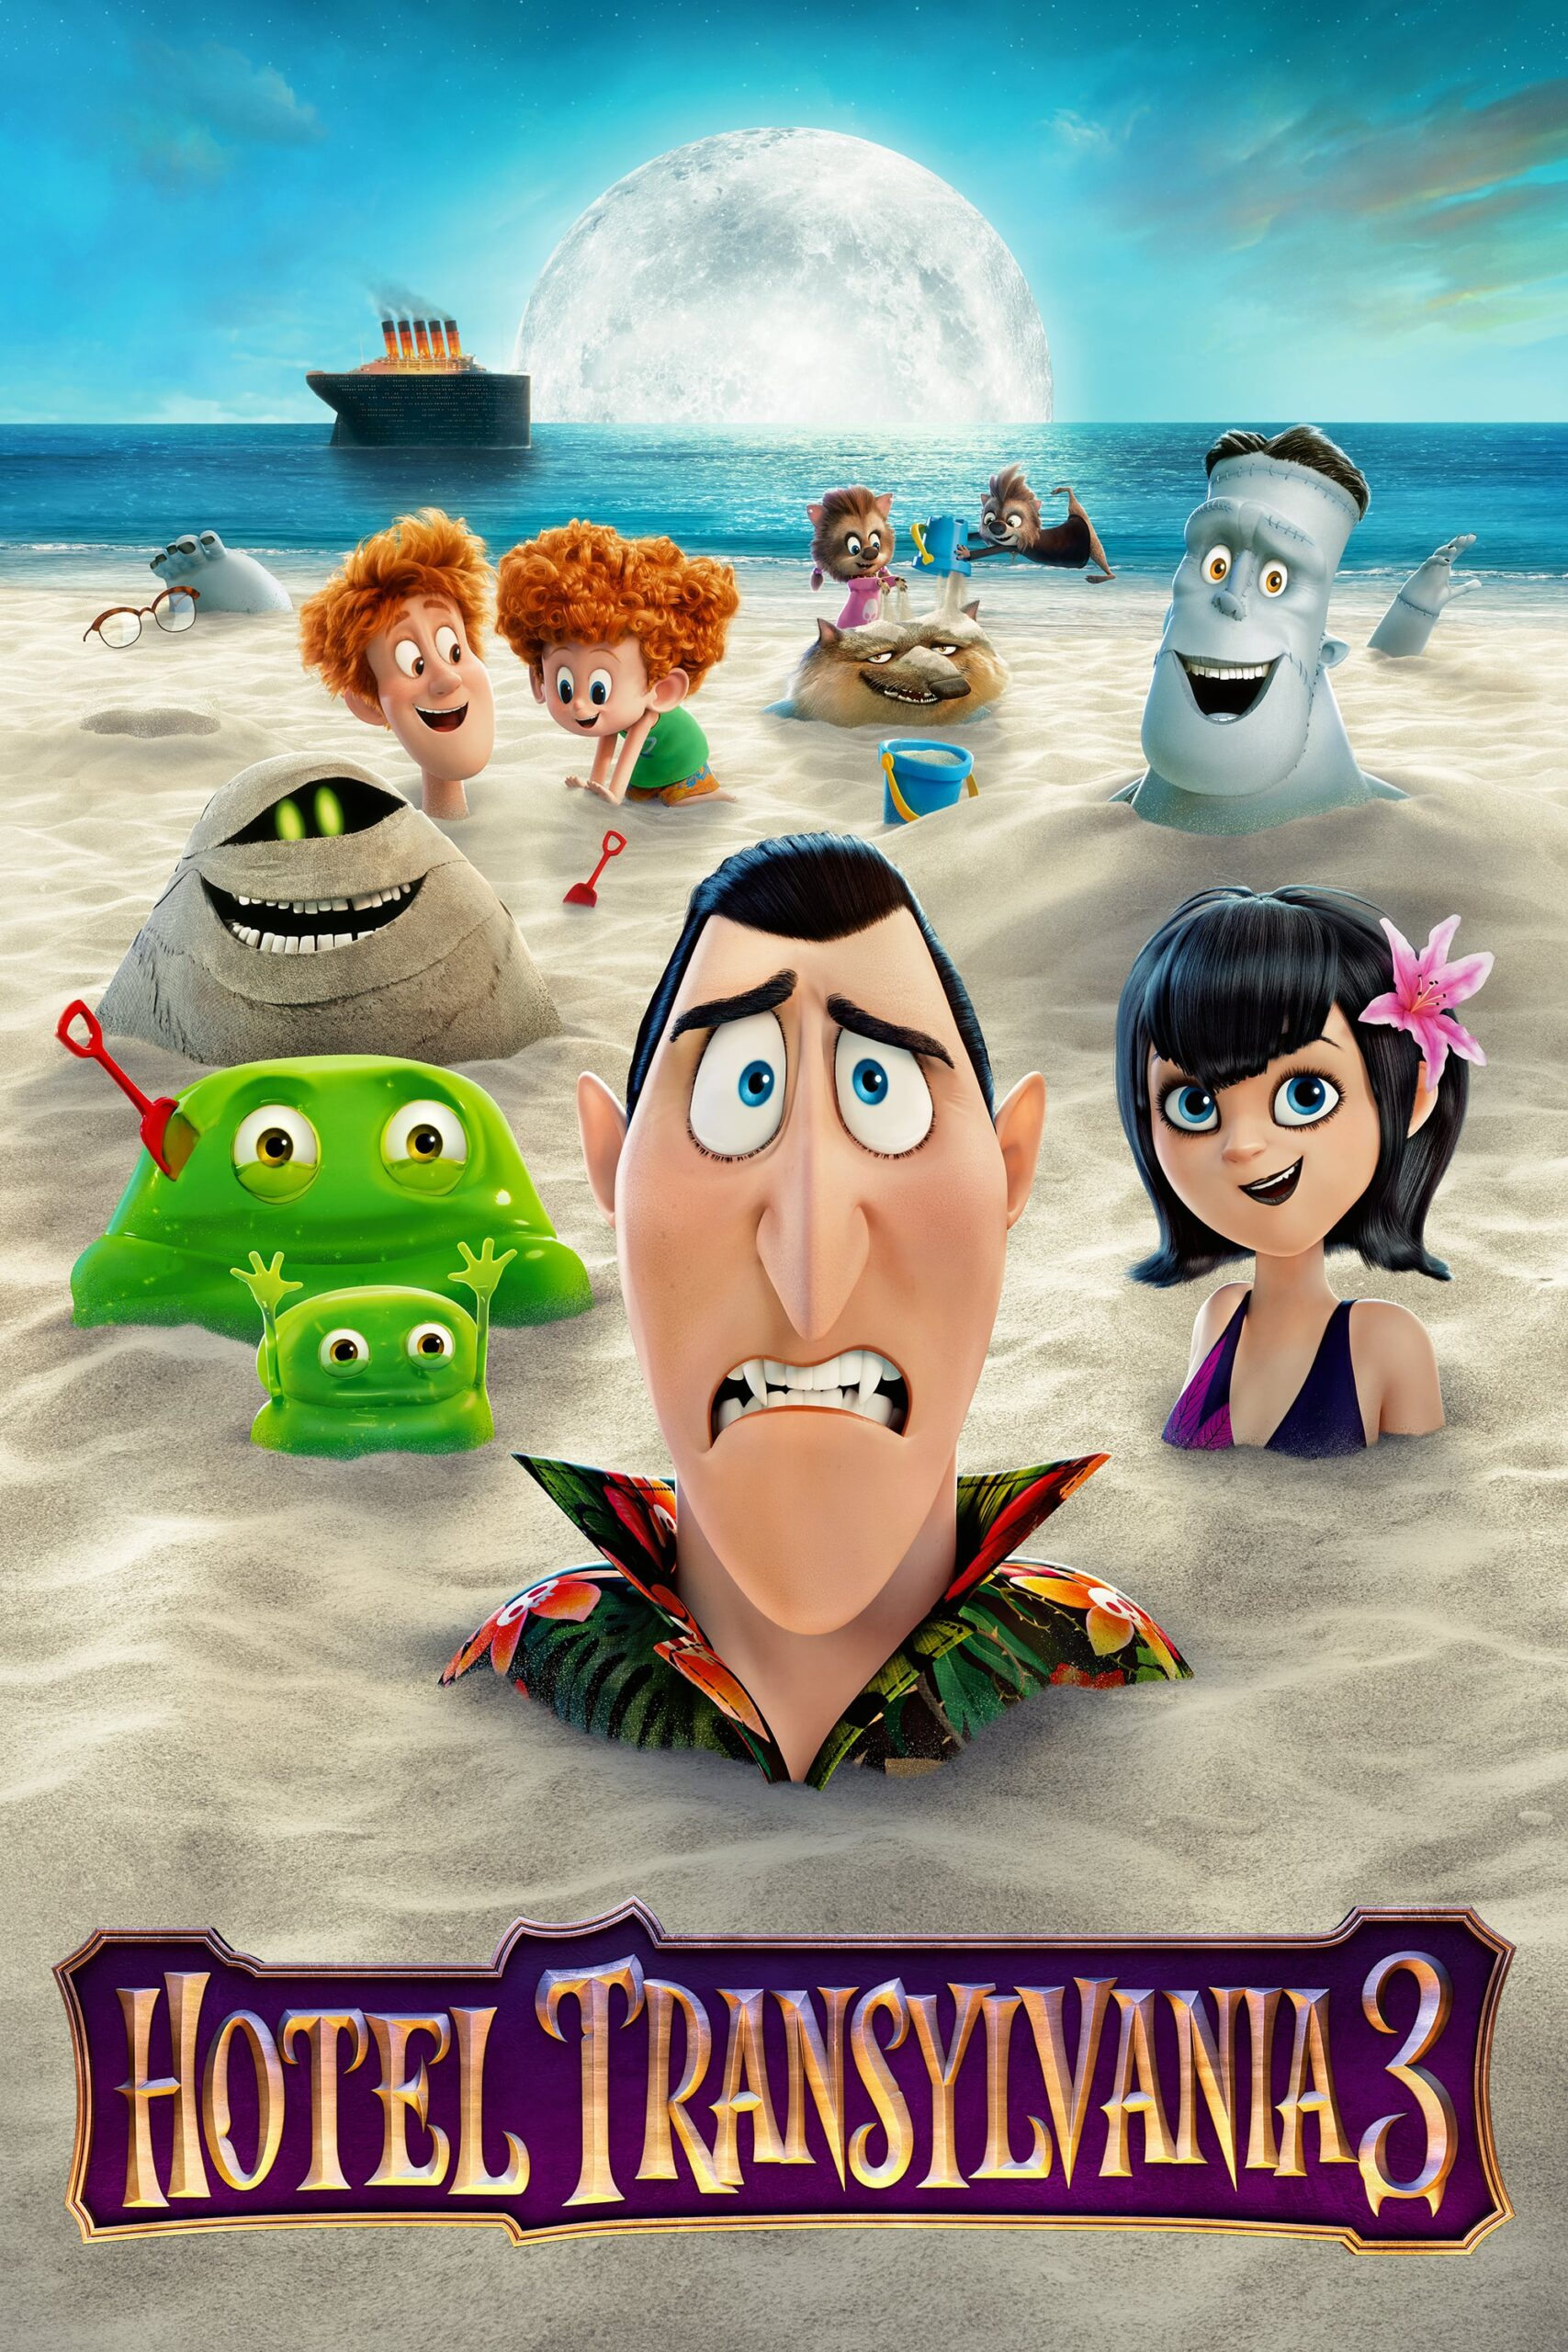 Hotel Transylvania 3: Summer Vacation Movie Streaming Online Watch on Google Play, Youtube